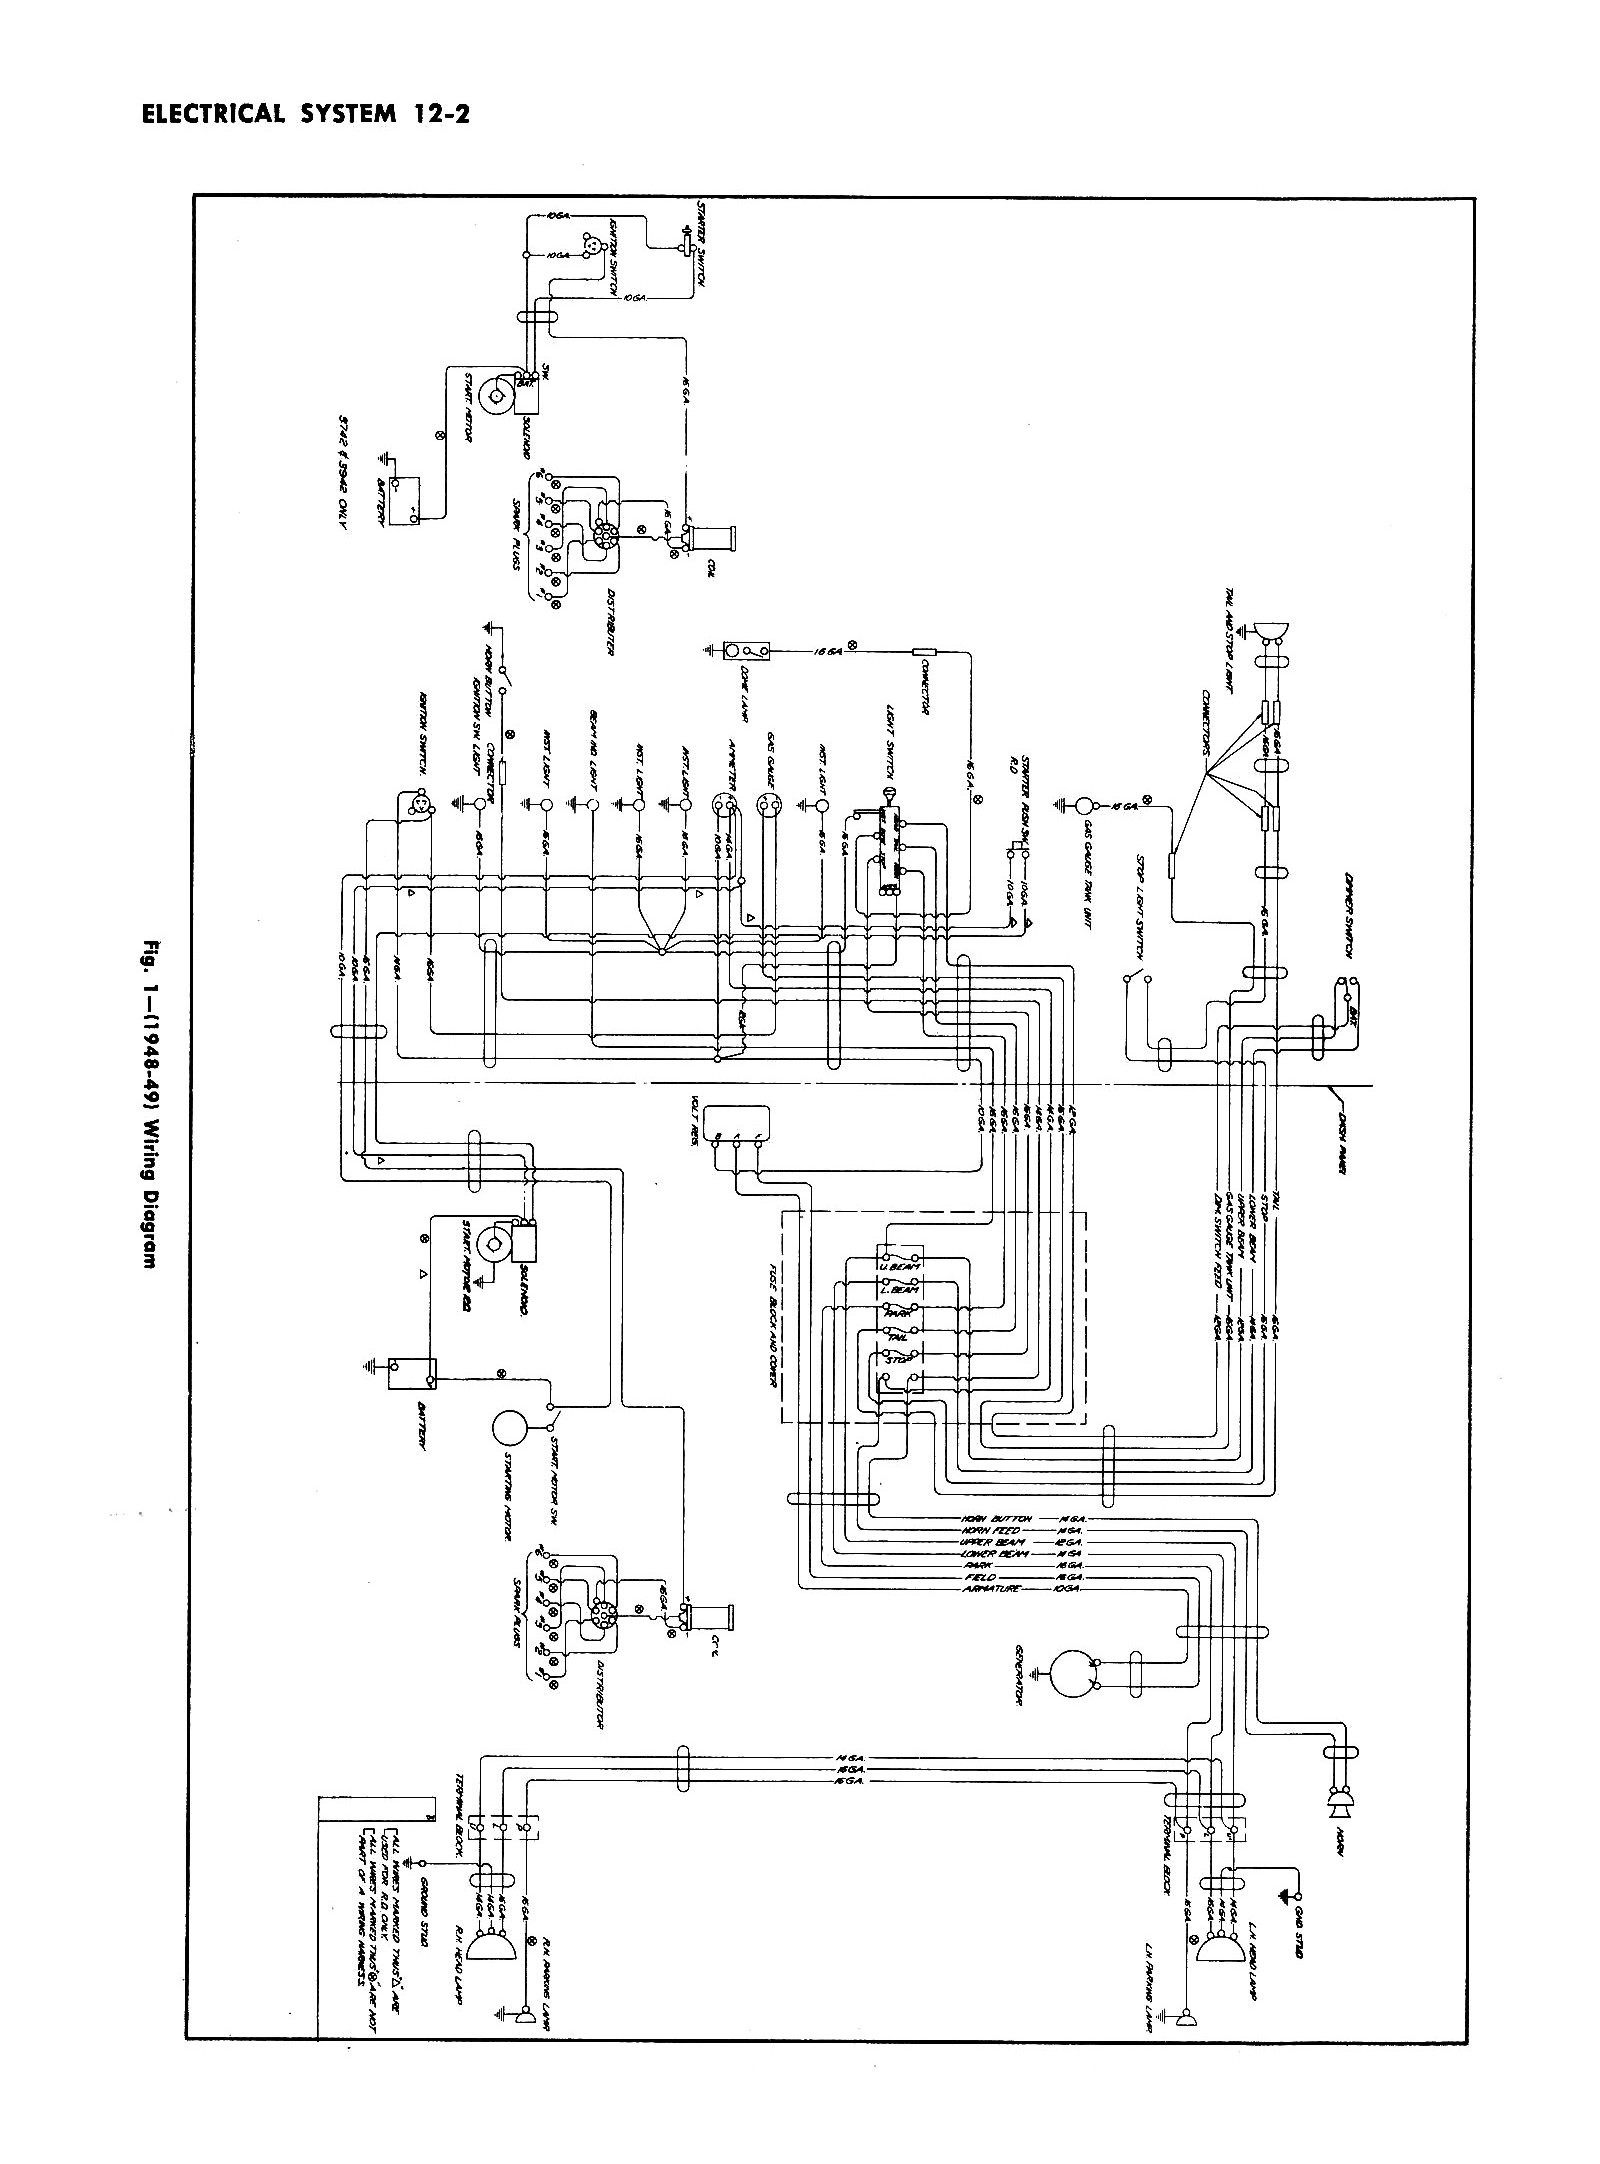 chevy wiring diagrams 1950 ford car wiring diagram 1950 ford car wiring diagram